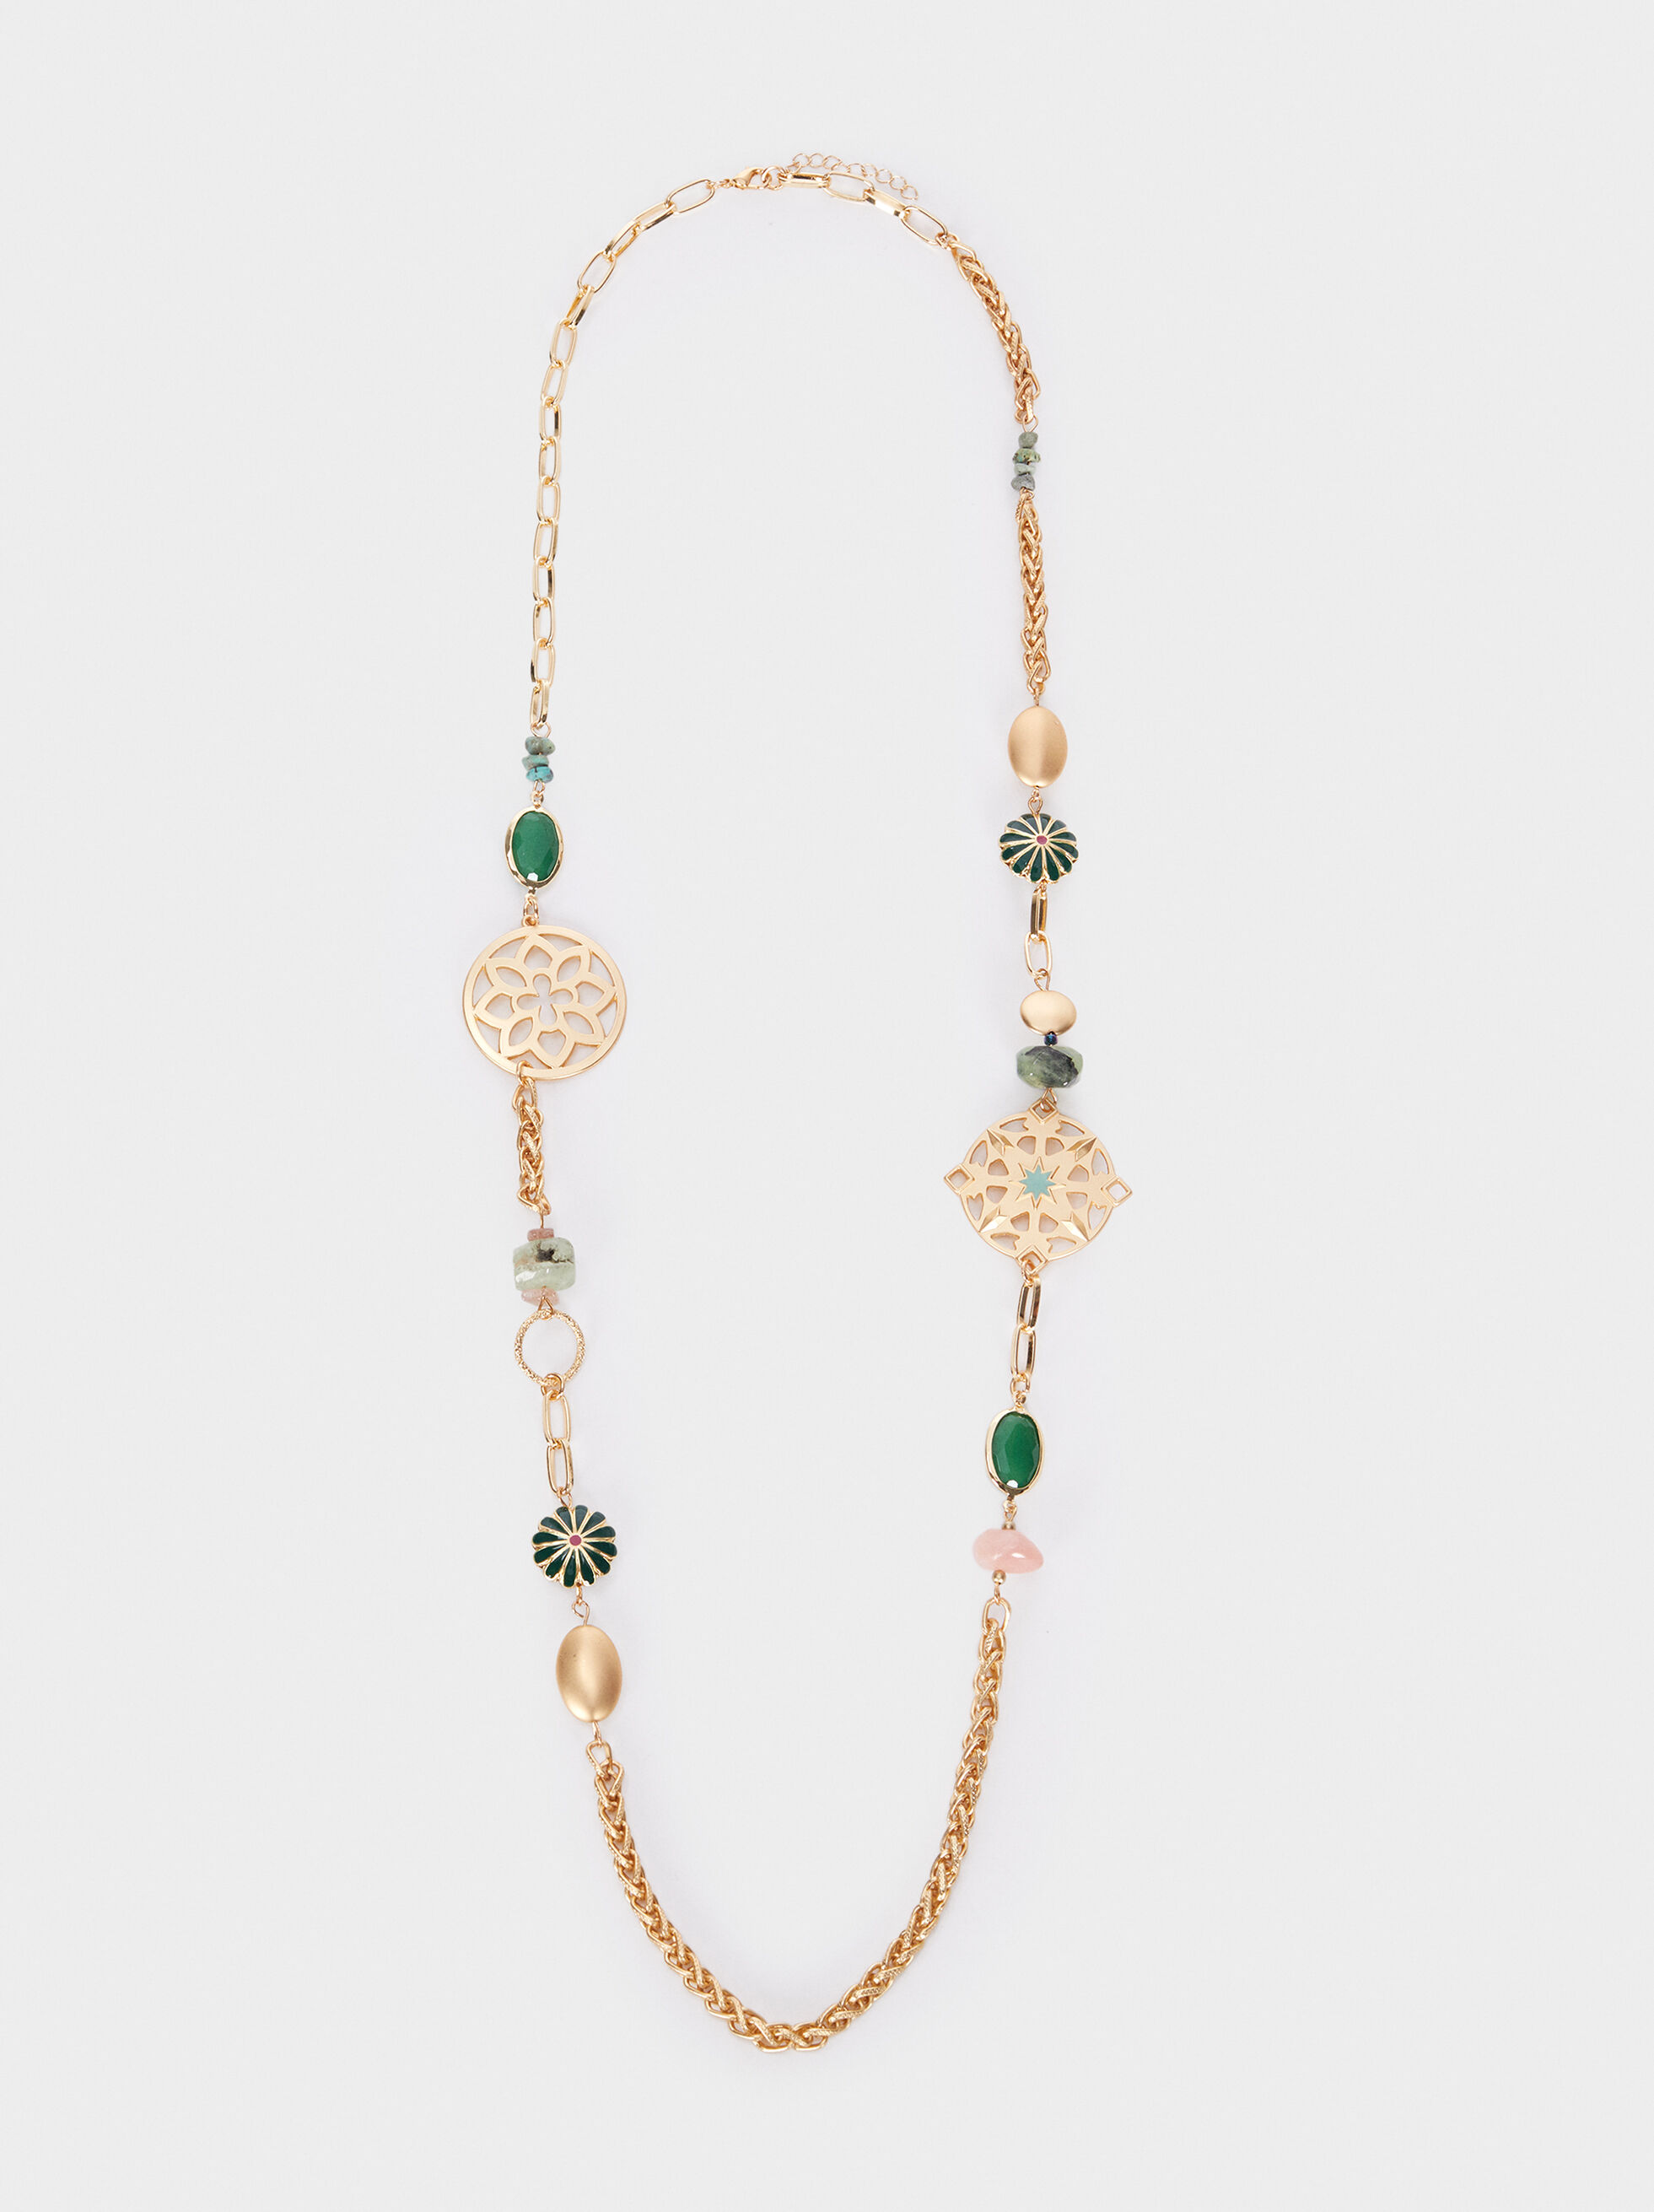 Long Gold Necklace With Stones And Beads, Multicolor, hi-res